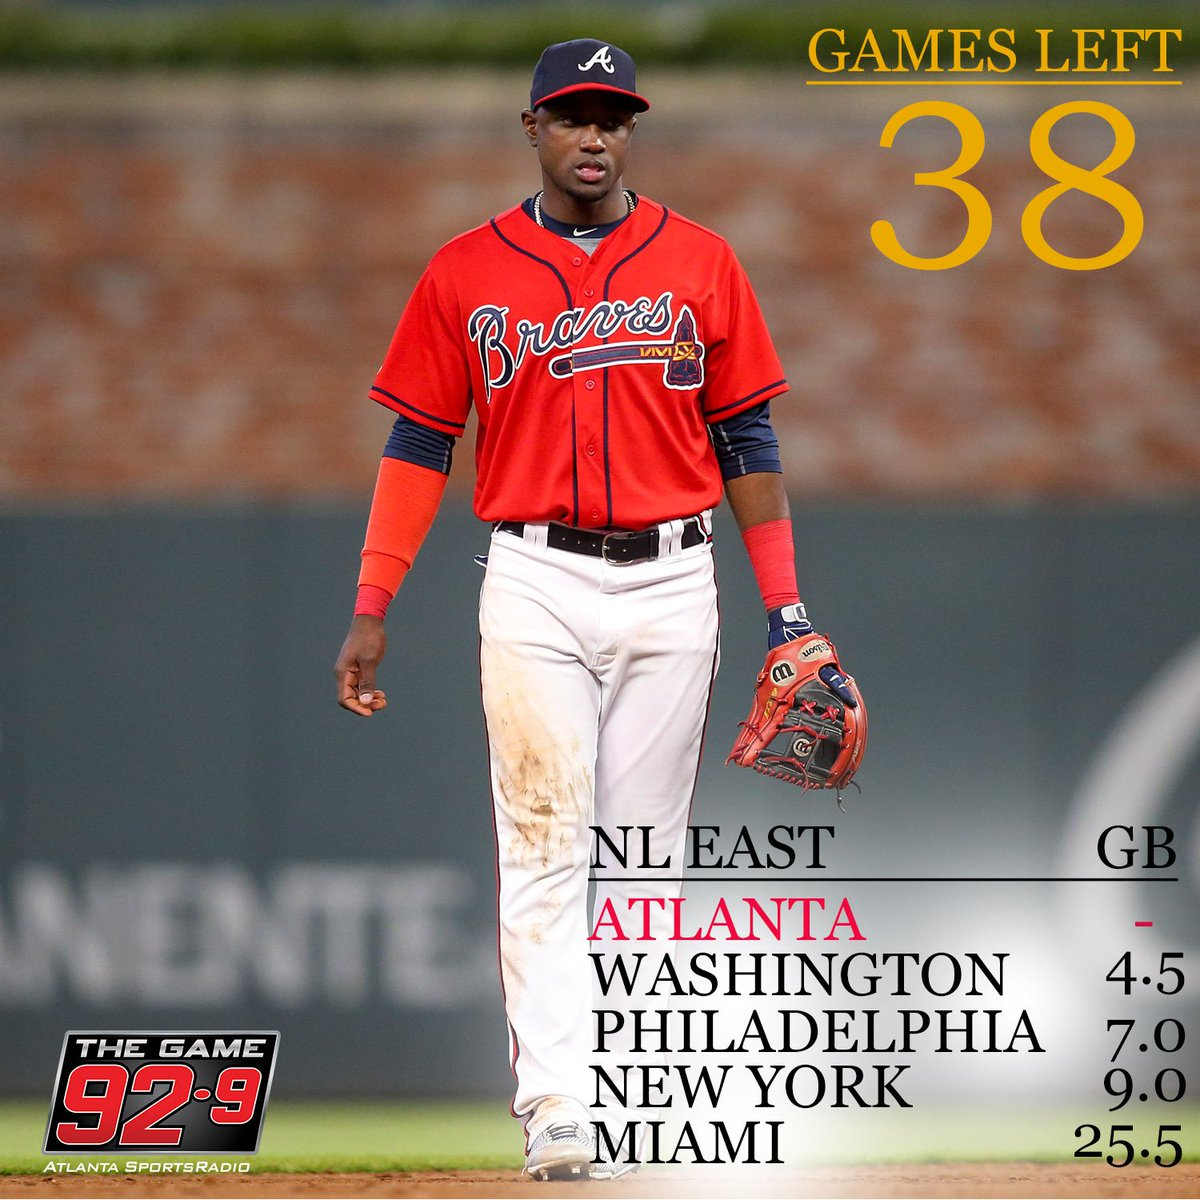 Friday (8-16) around the NL East: Nats over Milwaukee, 2-1 Phily over Padres, 8-4 Colorado over Miami, 3-0 Dodgers over Atlanta, 8-3 KC over Mets, 4-1  Adeiny Hechavarria produced in his Braves debut Friday, but the Dodgers bats were too much for Atlantas bullpen.